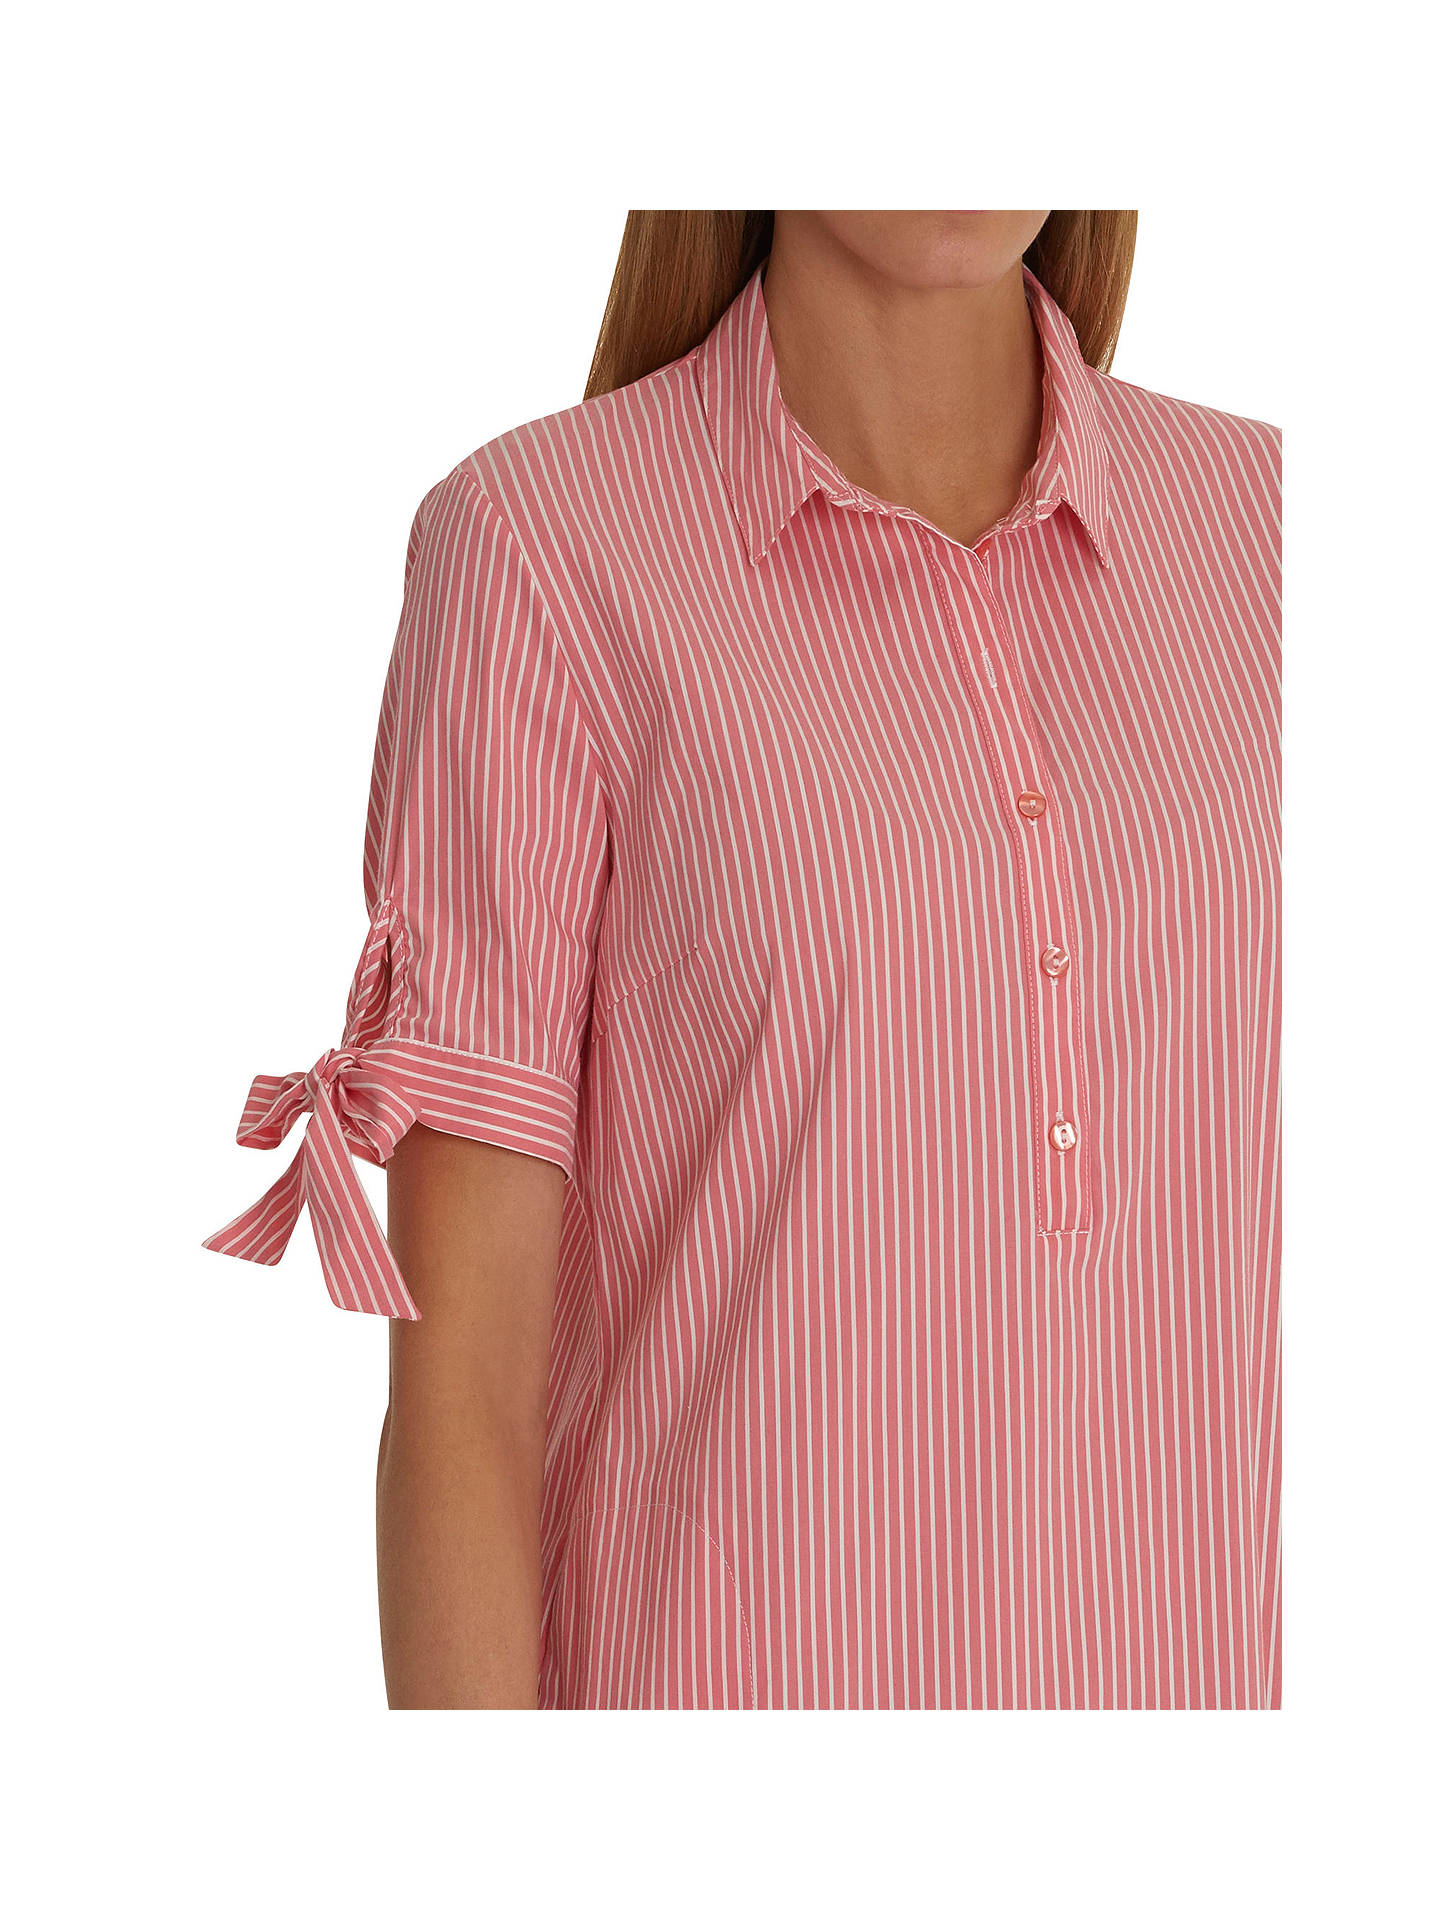 BuyBetty Barclay Stripe Print Shirt Dress, Red/Cream, 20 Online at johnlewis.com